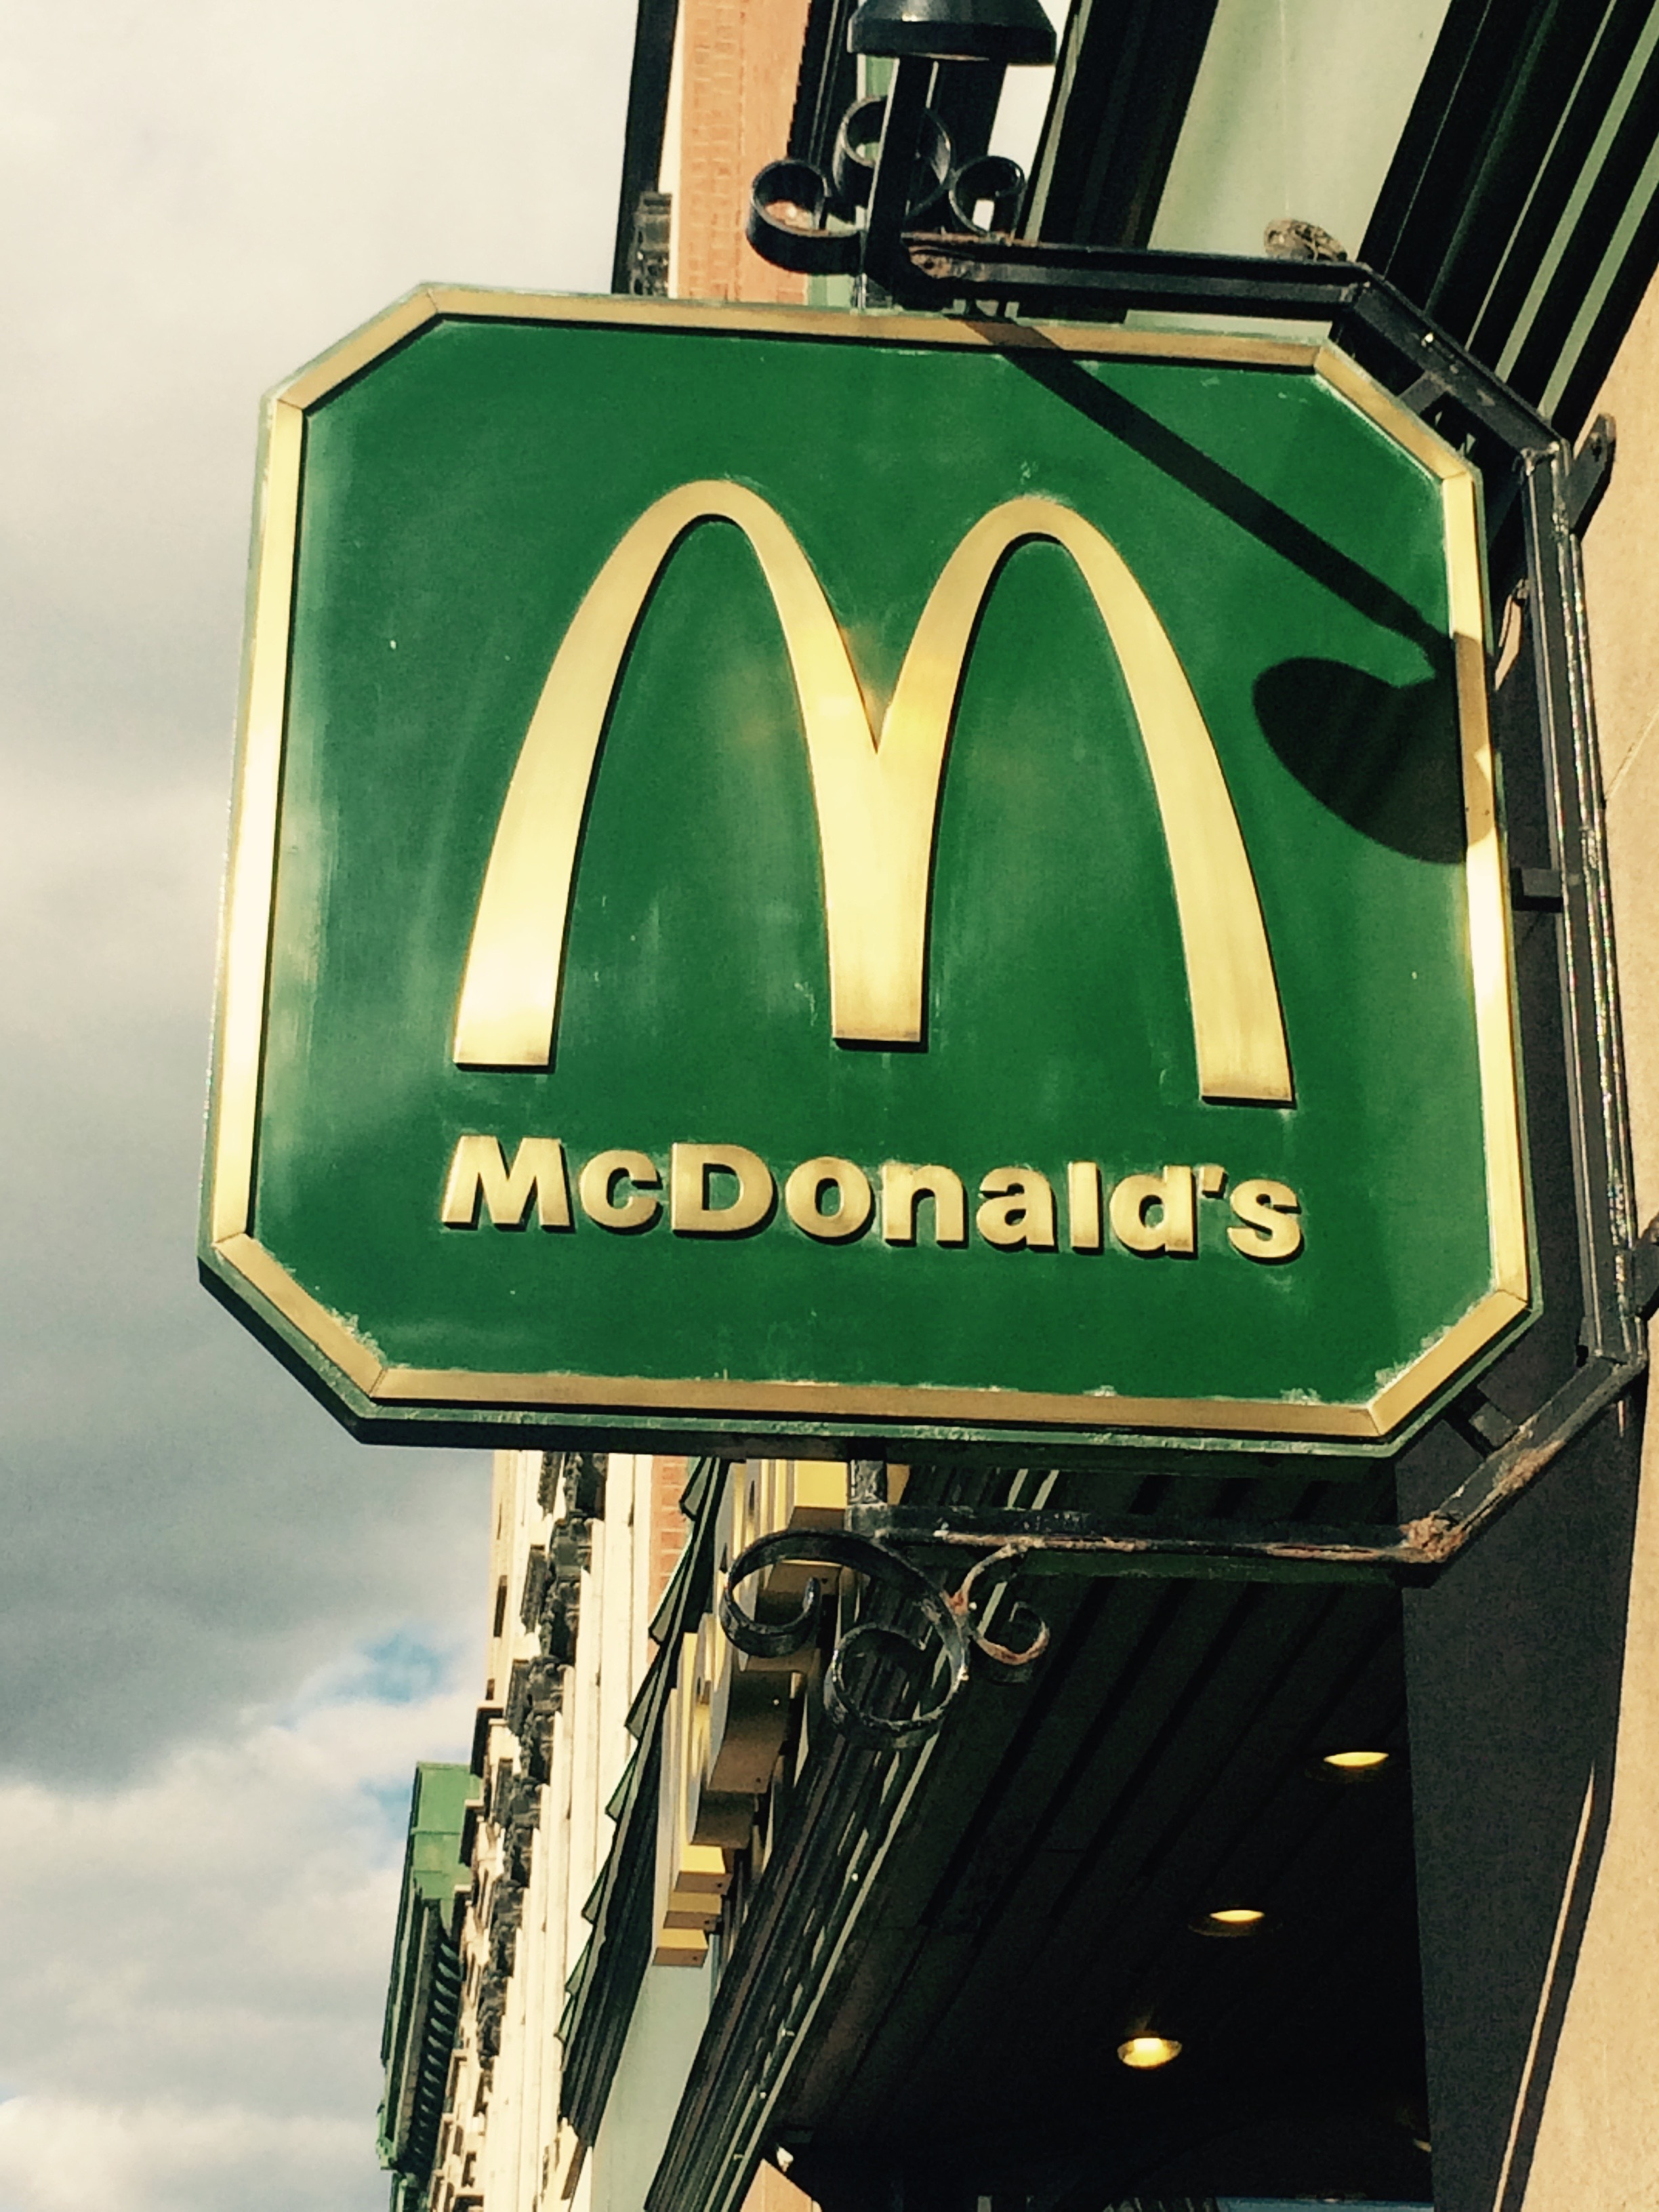 Green and Golden arches in Montreal